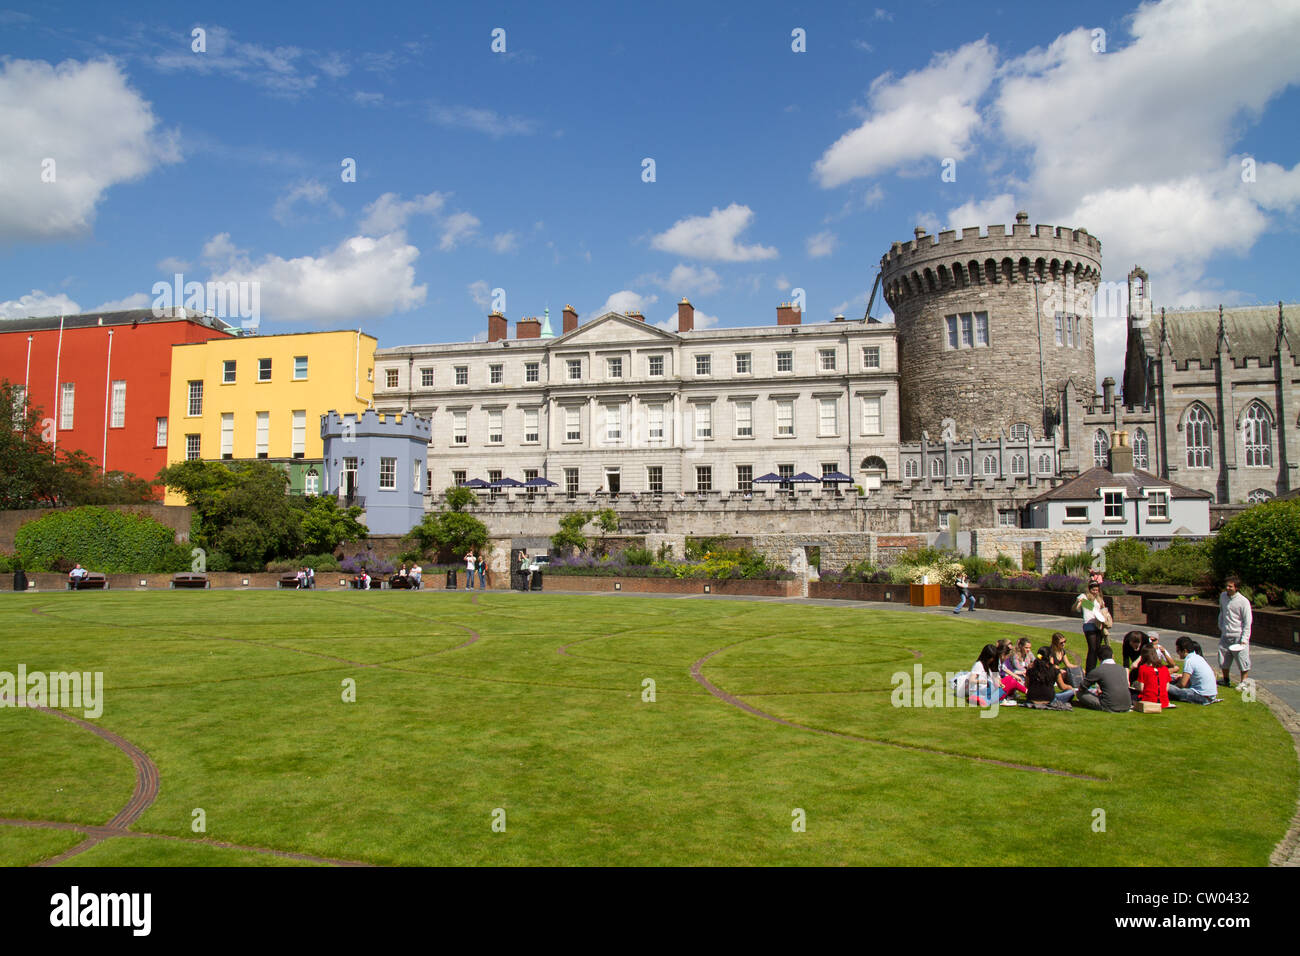 Dublin Castle grounds and park, Dublin City Ireland - Stock Image